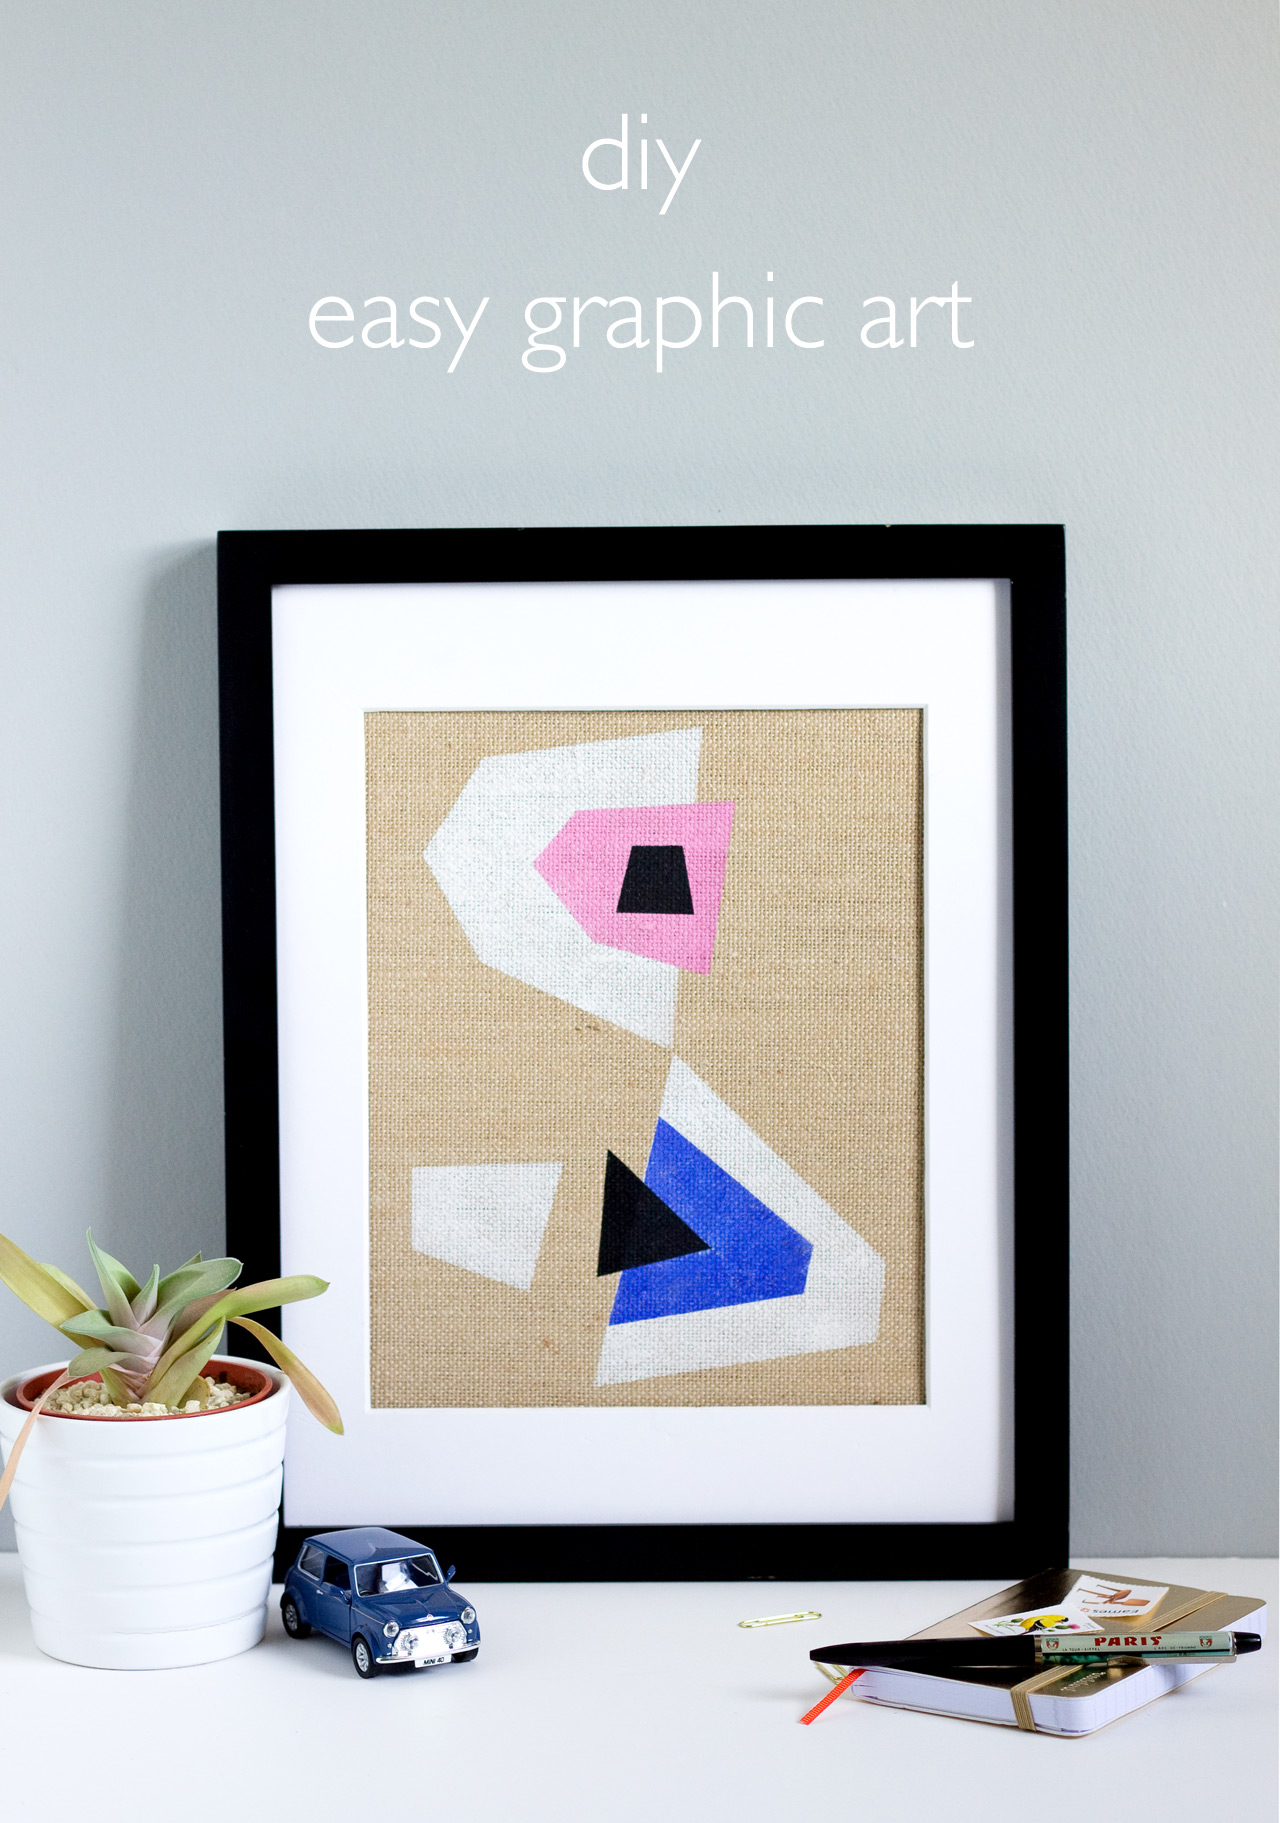 DIY Easy Graphic Art | click through for the full tutorial!